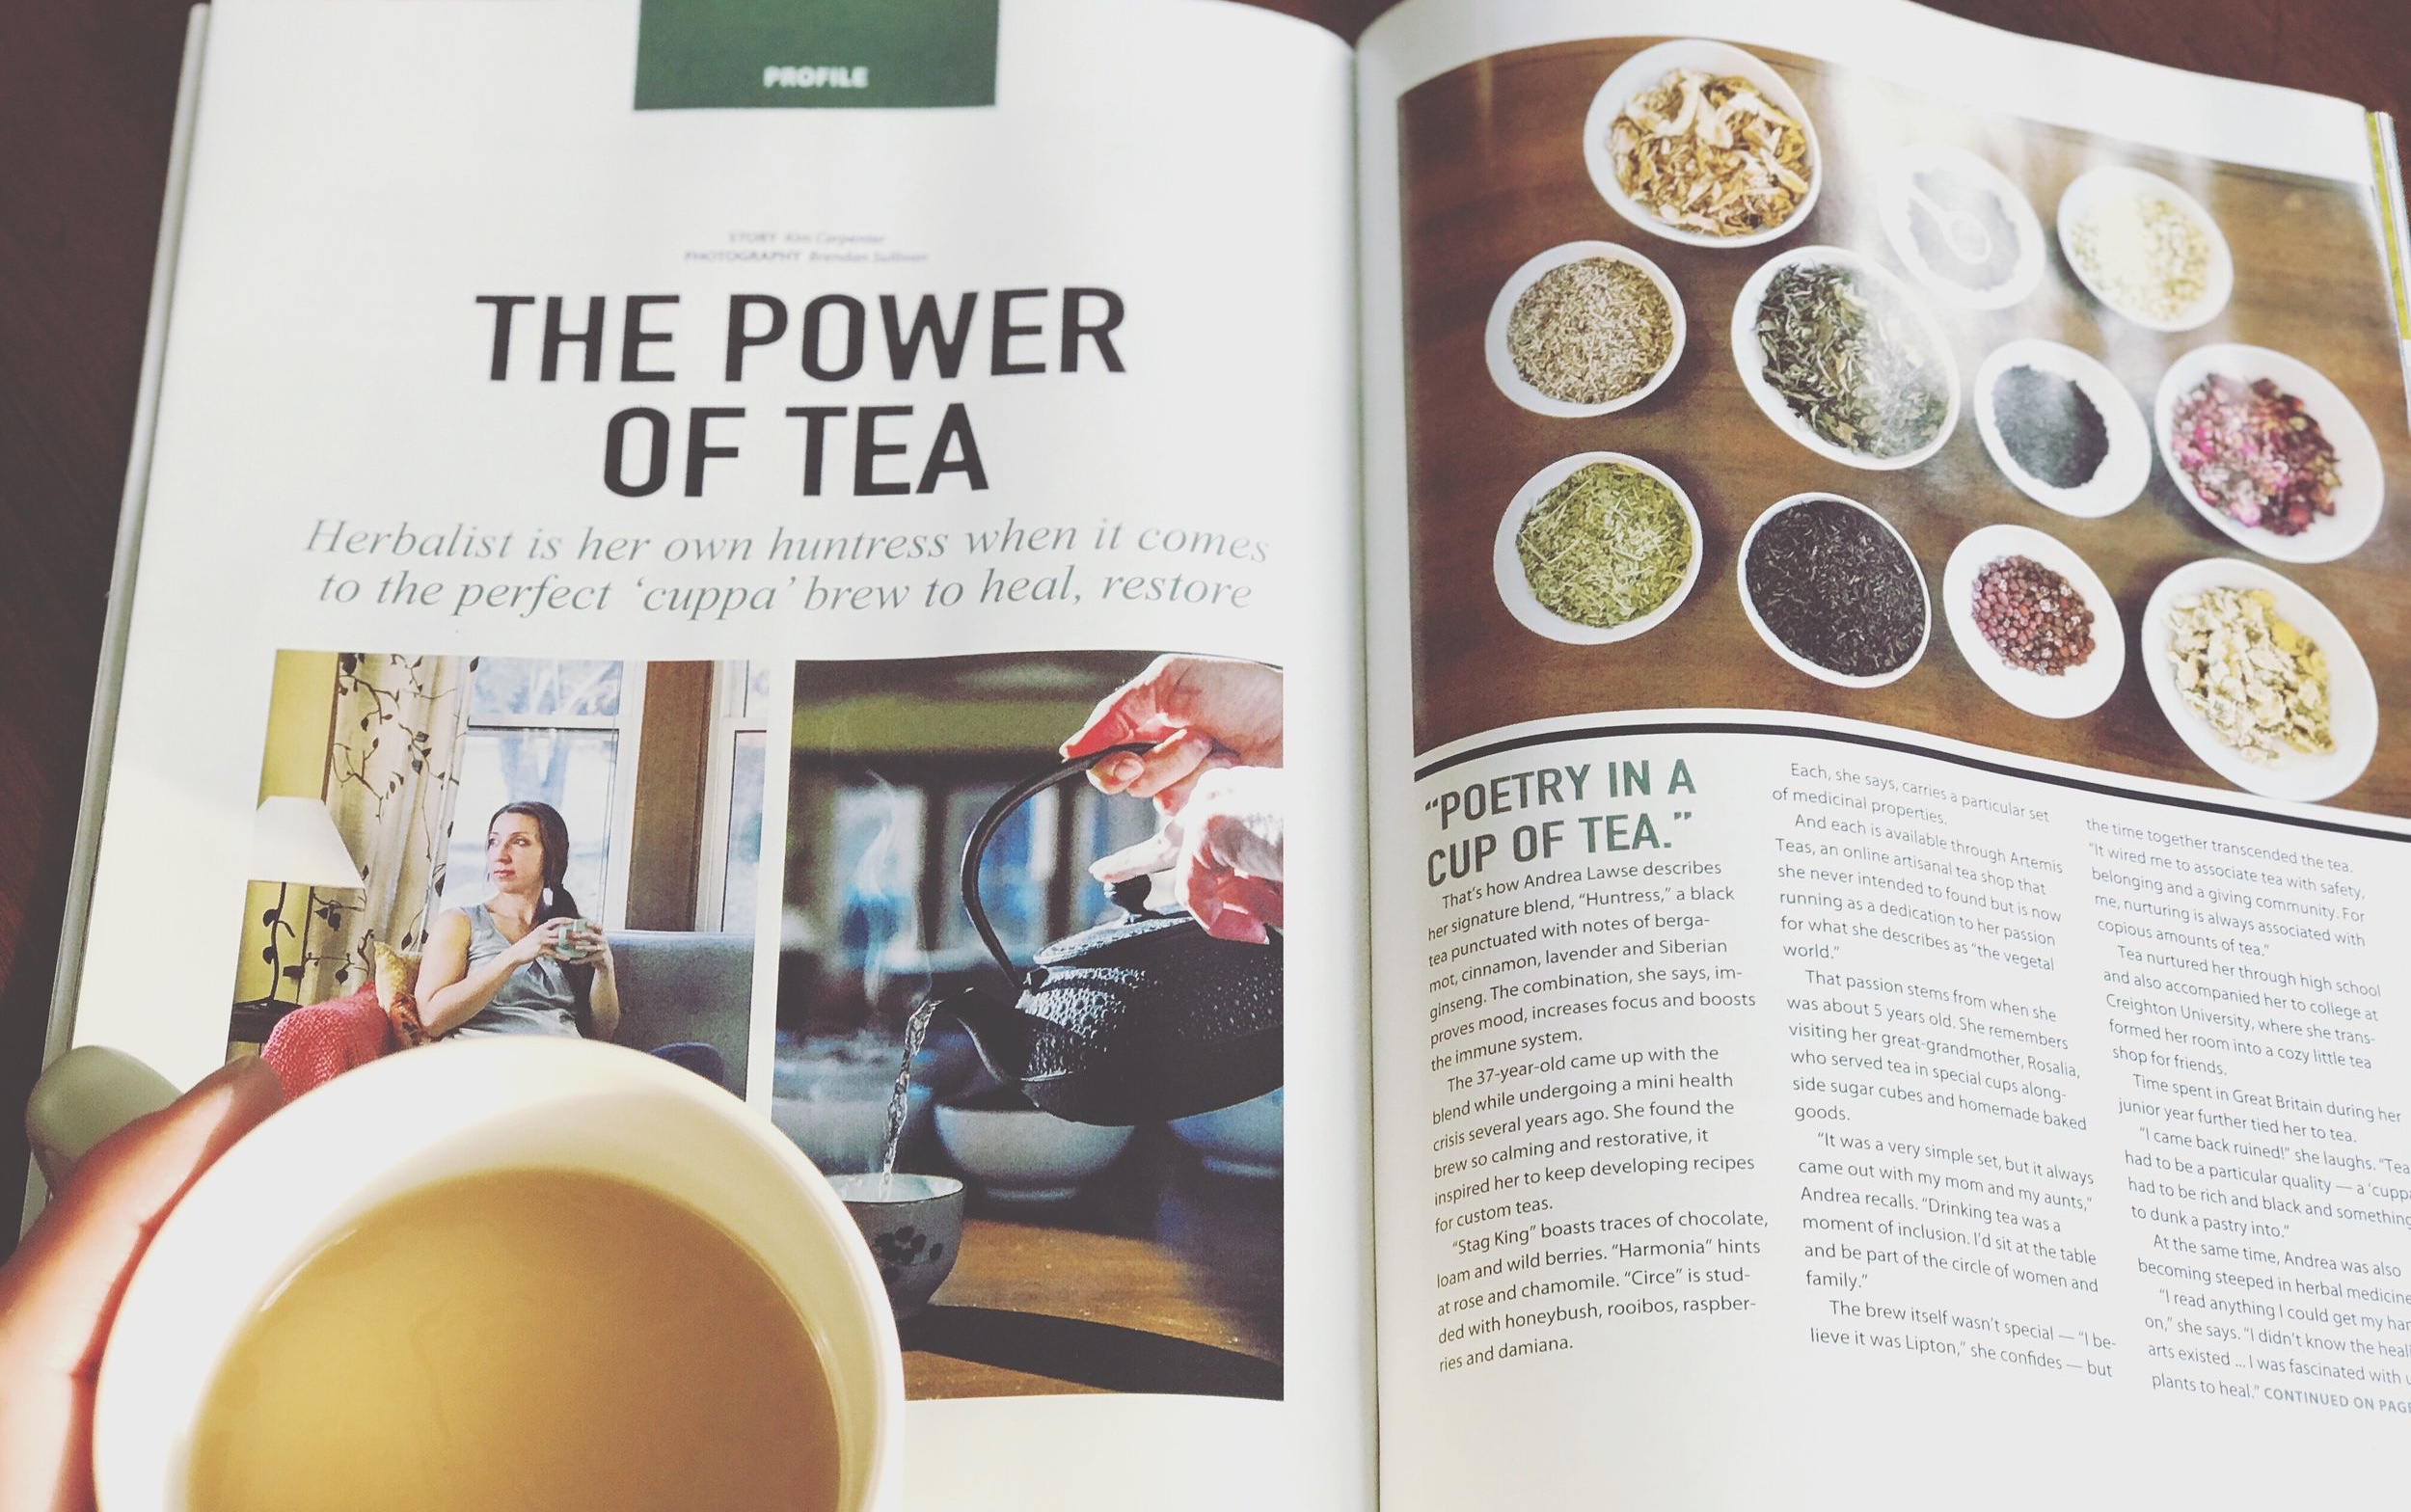 Omaha Inspired Living Magazine: Artemis Teas - There are many paths that have converged, leading me to create Artemis Teas. This lovely article in Omaha Inspired Living Magazine expresses in a beautiful way one of those early paths . . .